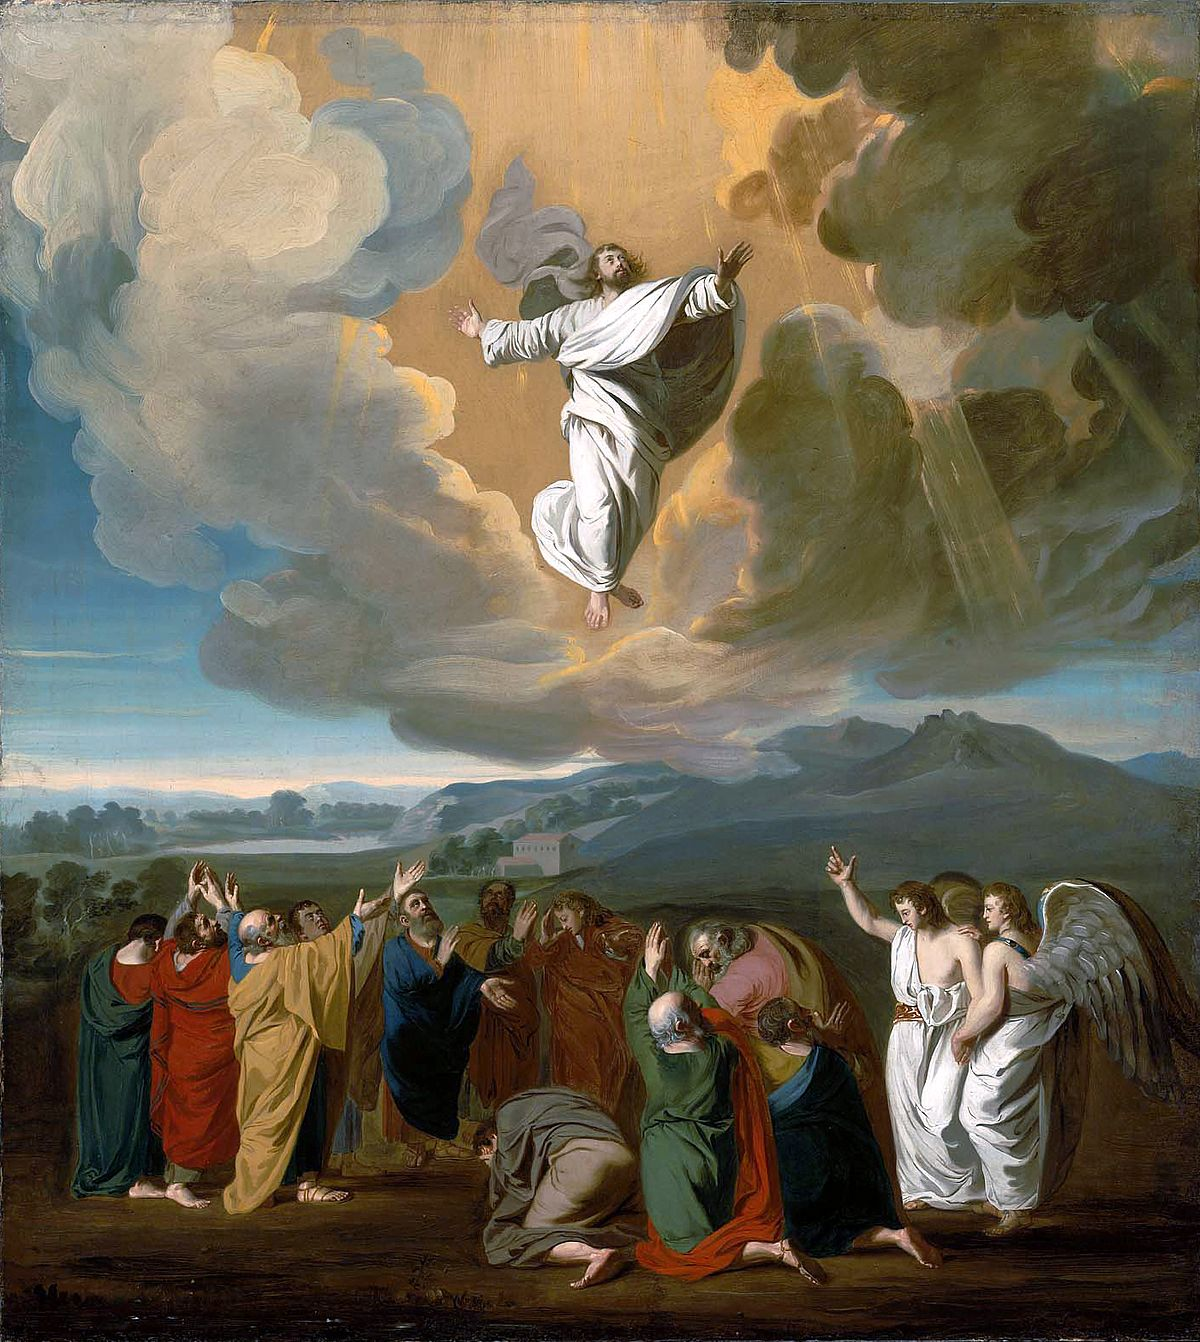 Ascension of Jesus - Wikipedia